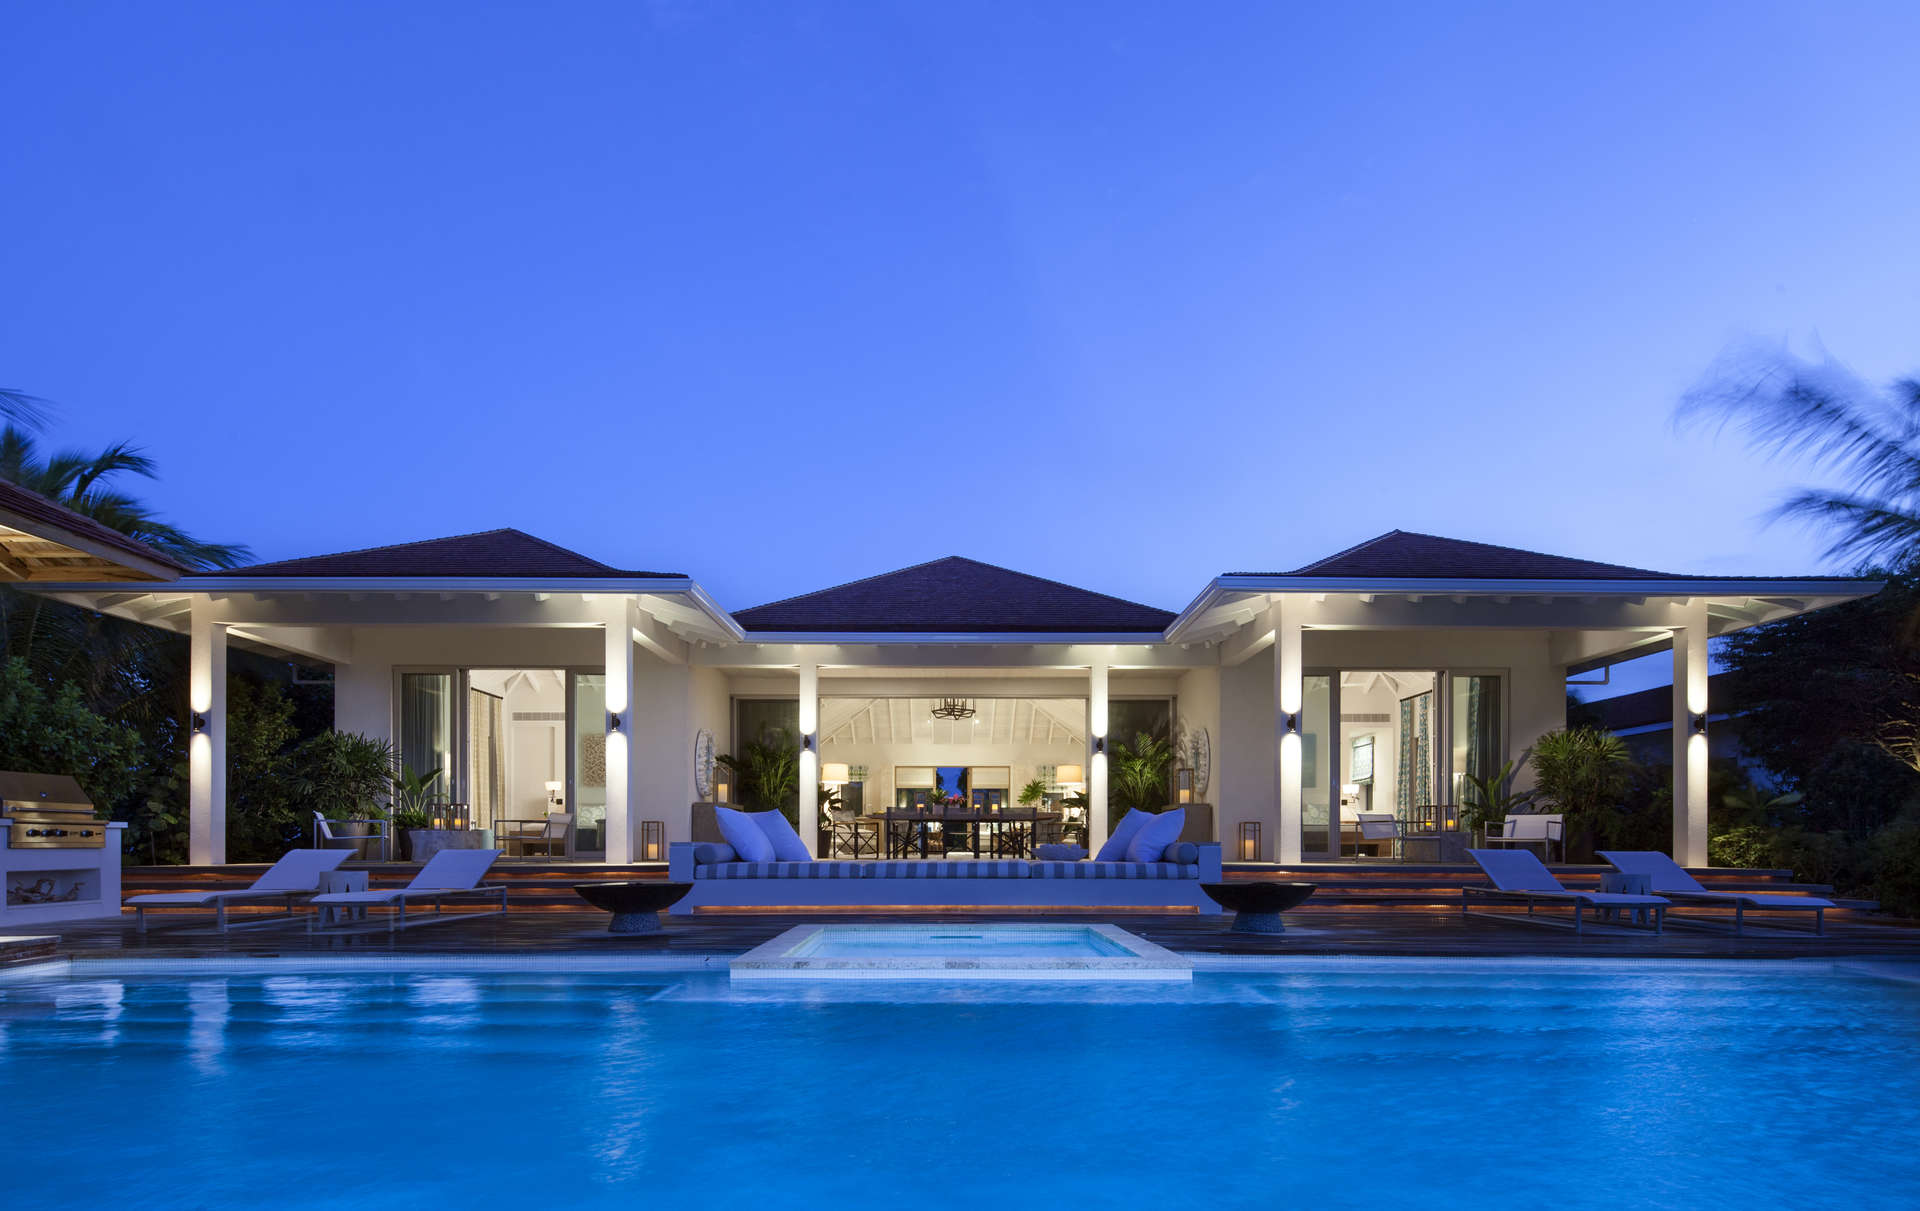 Luxury villa rentals caribbean - Turks and caicos - Providenciales - Grace bay club - The Residences | Portofino - Image 1/14